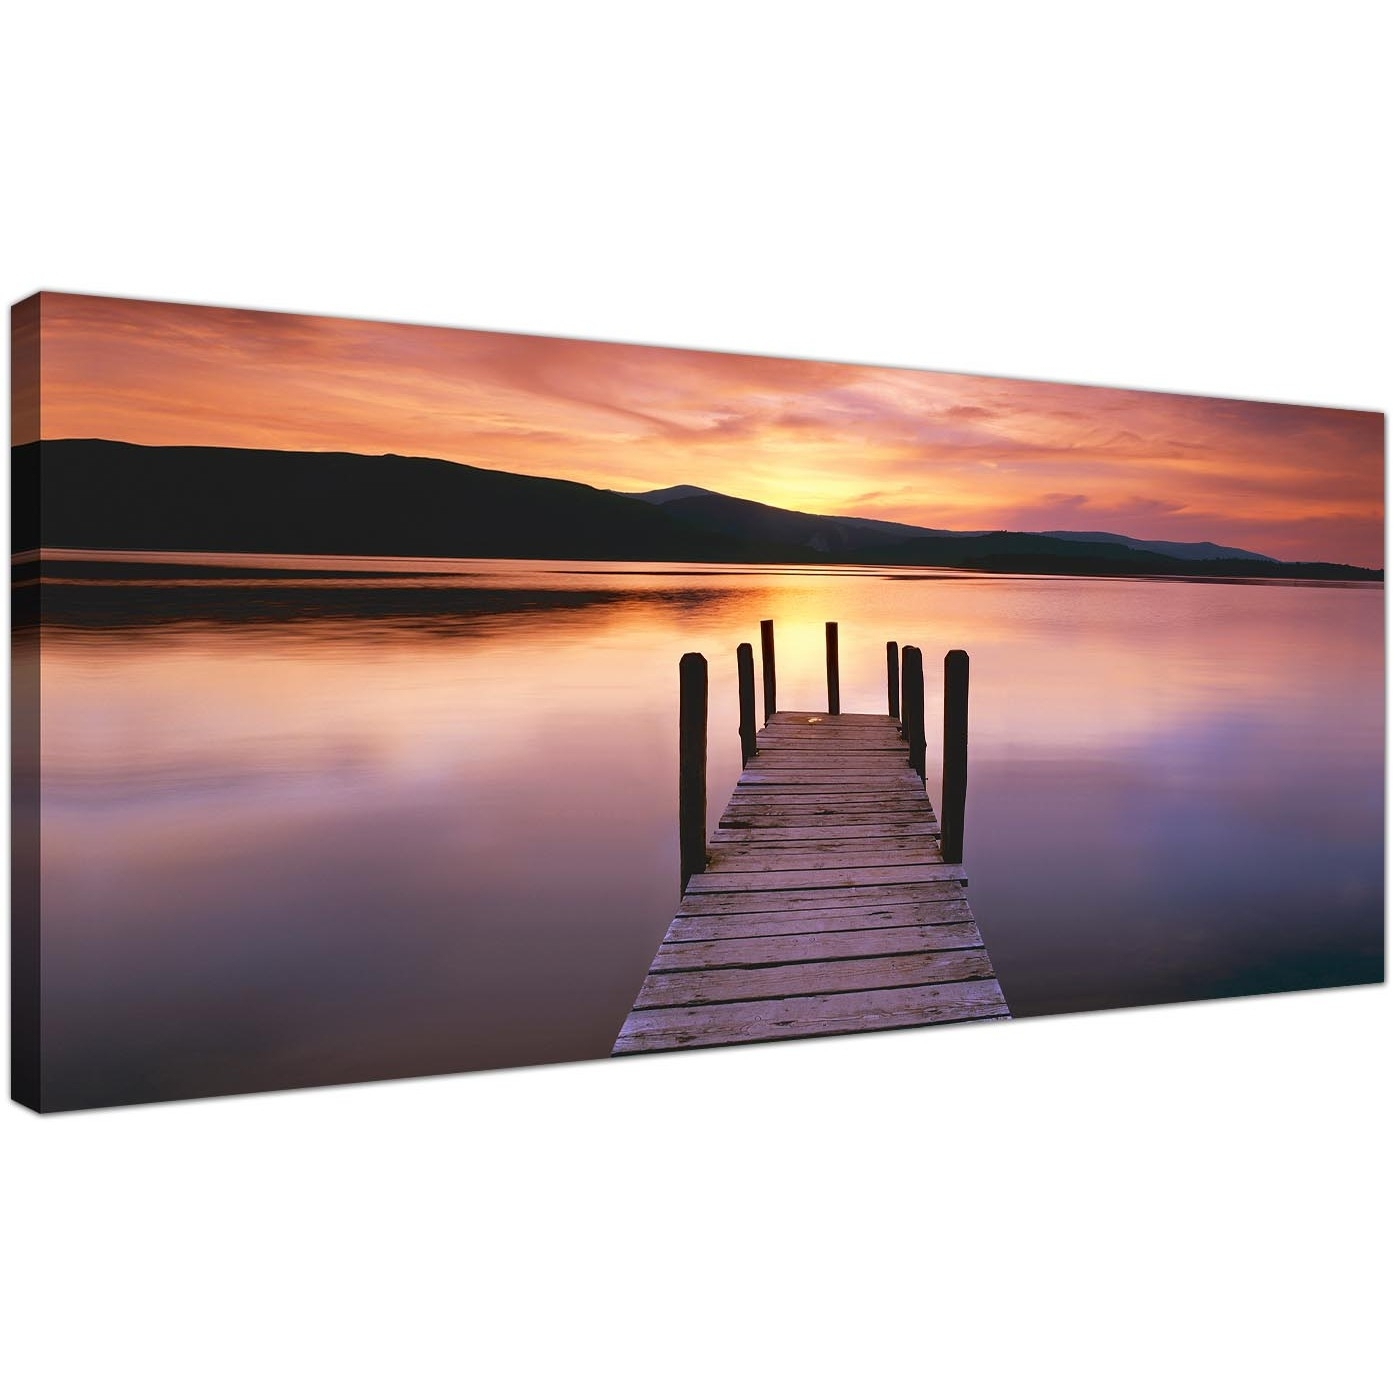 Wide Canvas Wall Art Of A Lake Sunset For Your Living Room Regarding Best And Newest Panoramic Canvas Wall Art (View 8 of 15)